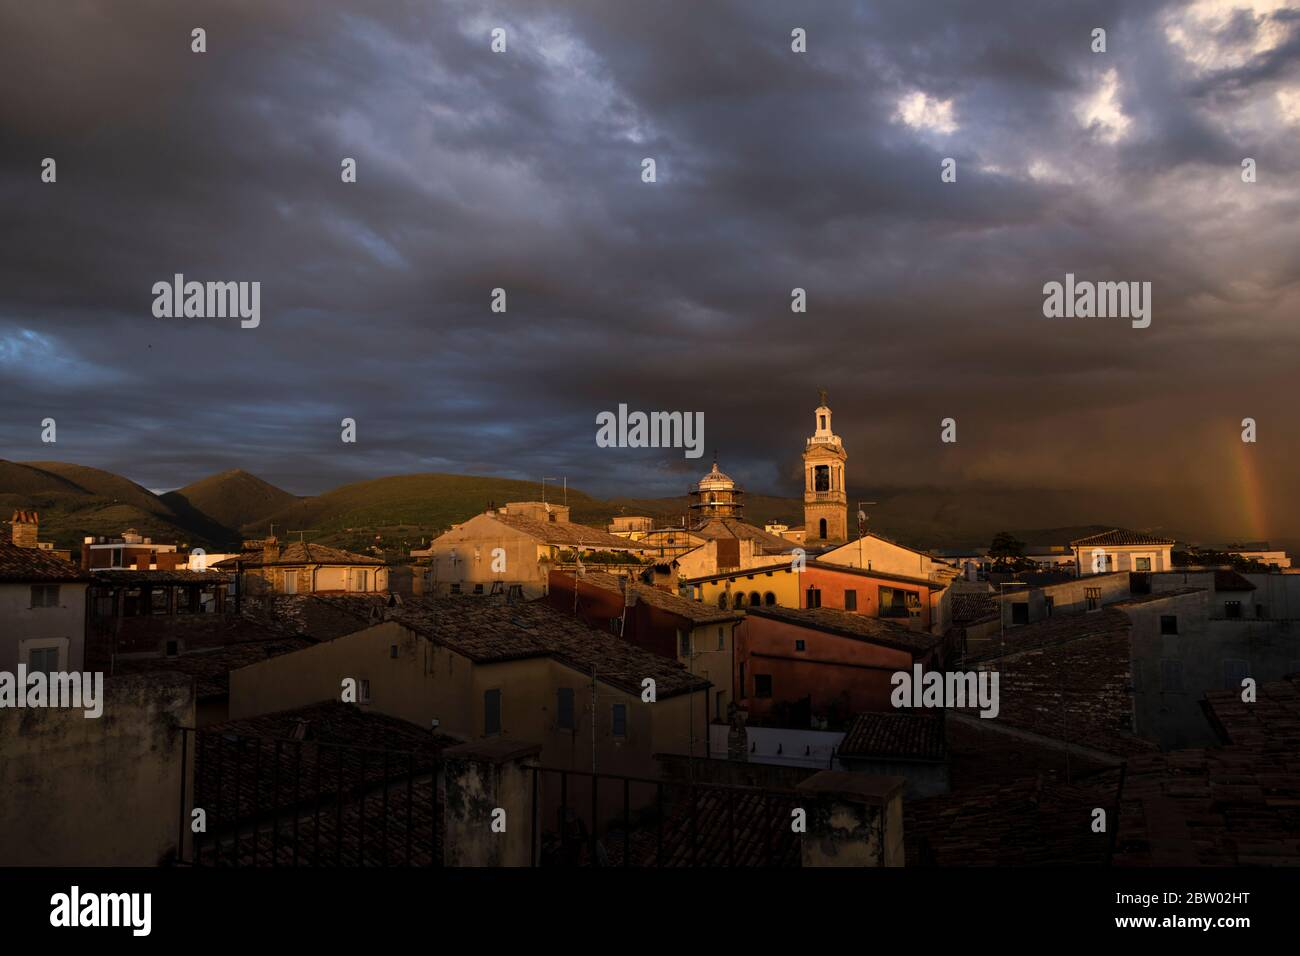 Rooftops of Foligno caught in sunlight, but set against stormy sky with a rainbow.  Umbria, Italy Stock Photo